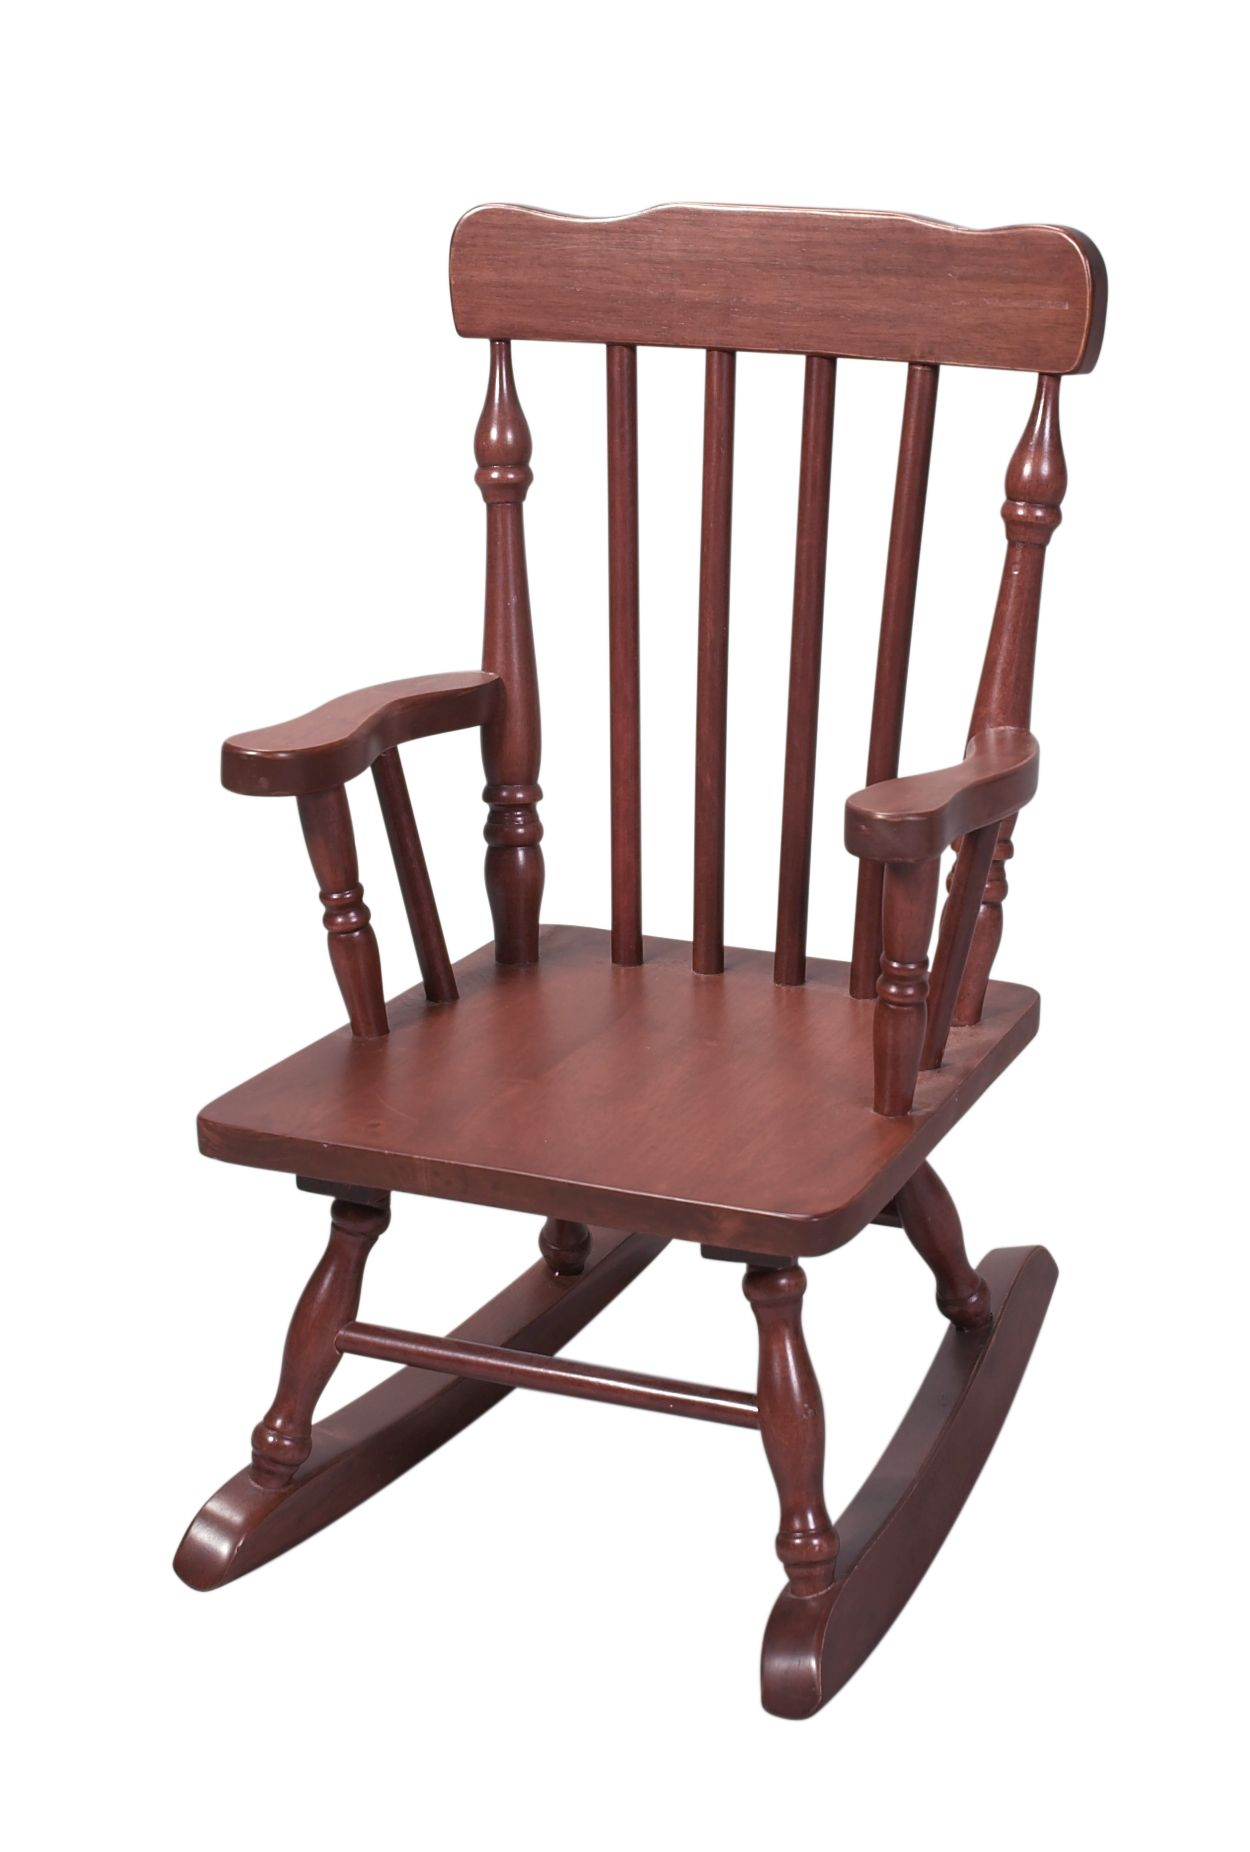 Giftmark Childs Spindle Rocking Chair in Cherry  Sears